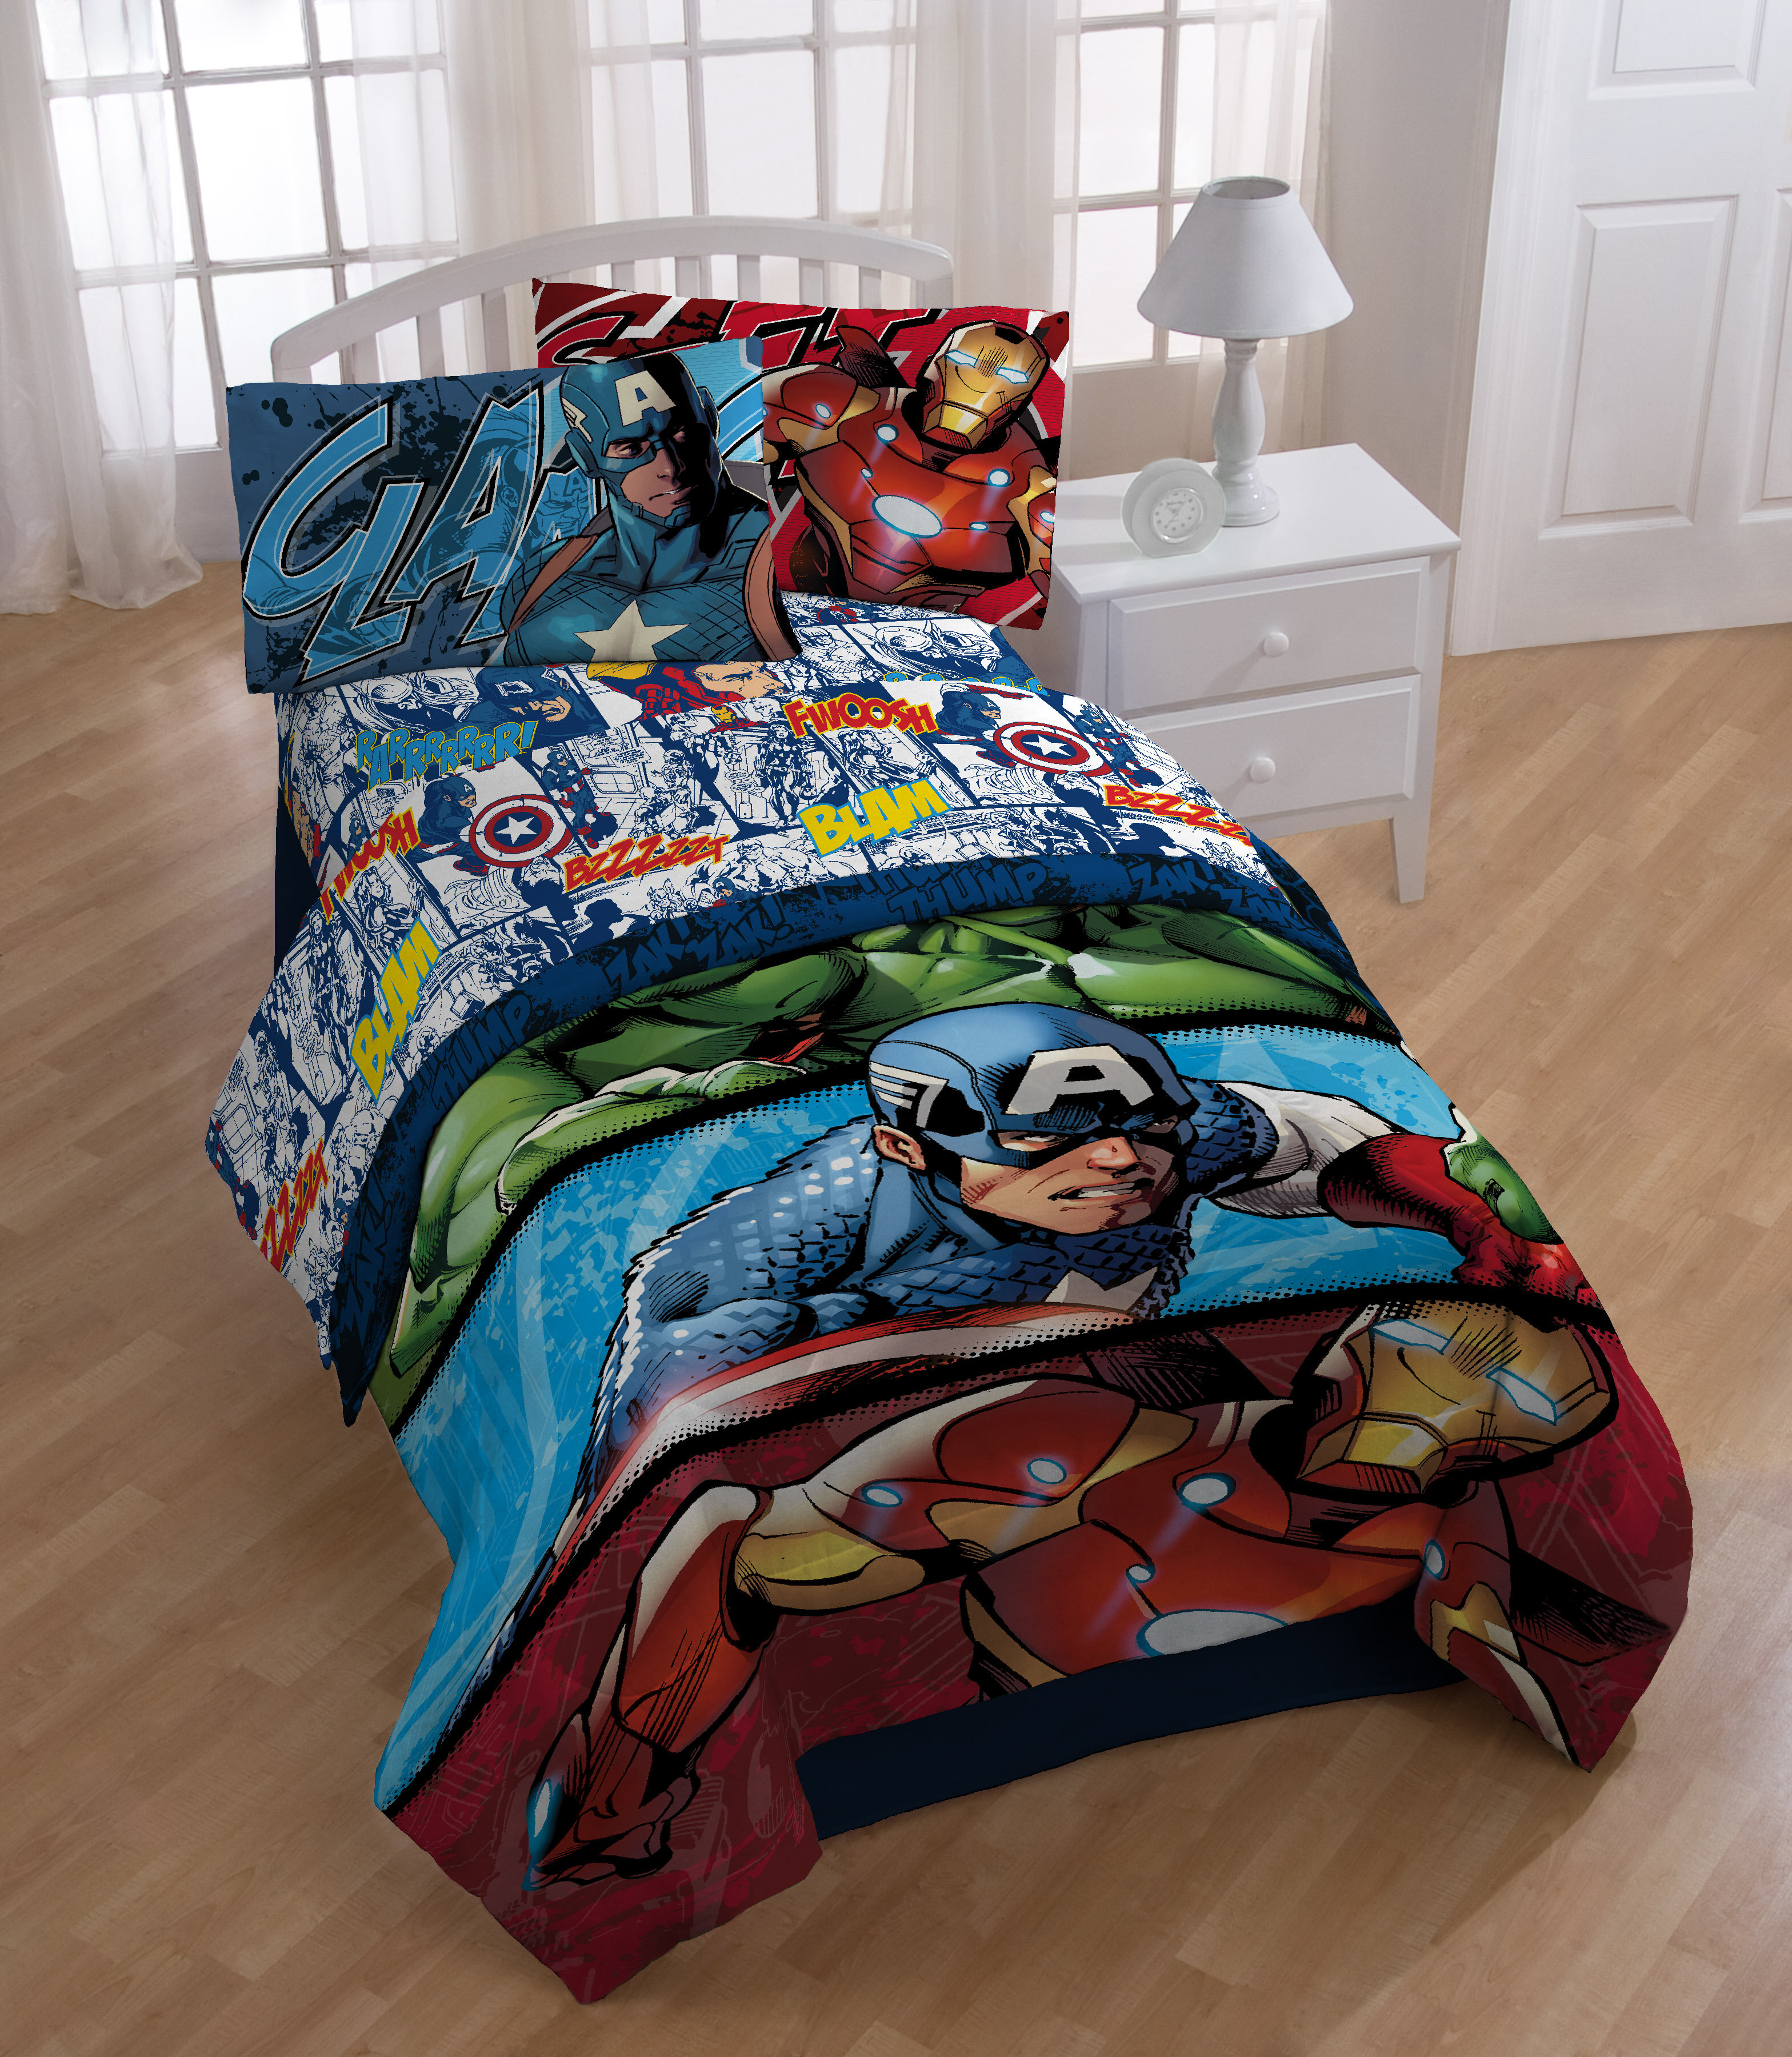 decoration gallery sizes bath vs for comforters unique bed qu size comfort comforter bedroom sized beyond avengers xl queen leopard ideas cheap chart and beautiful